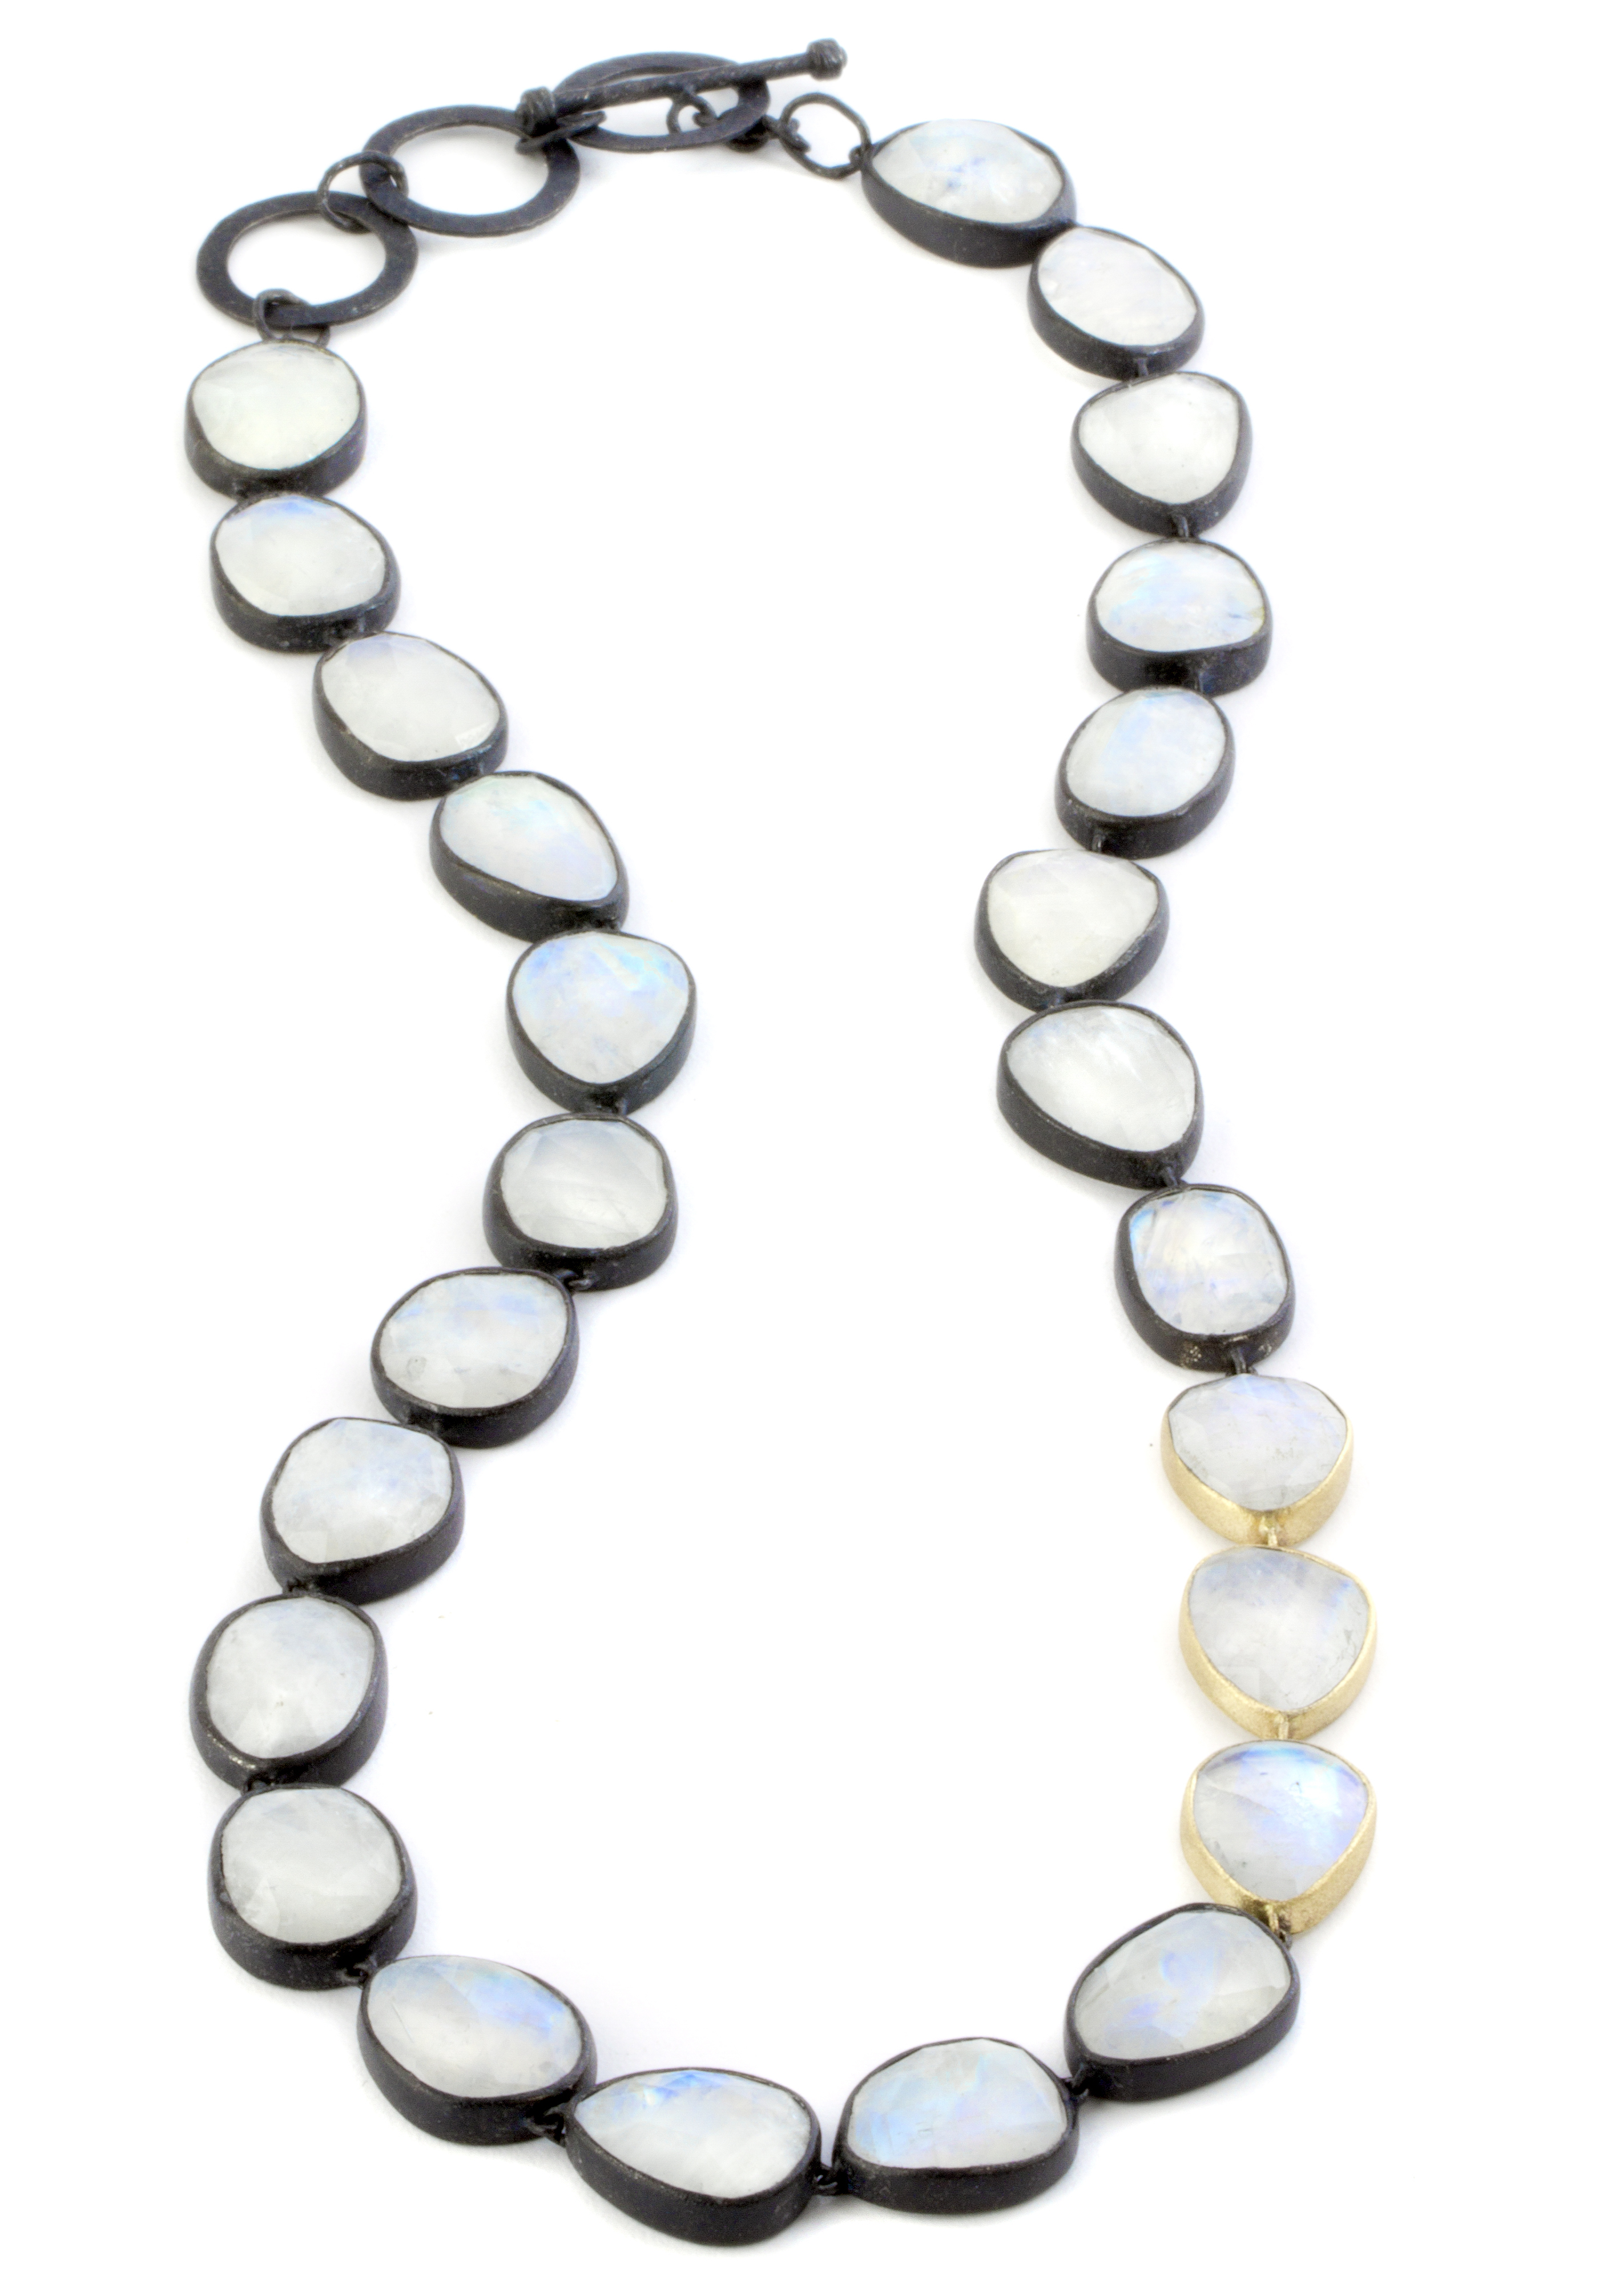 Nina Nguyen Over the Moon necklace | JCK On Your Market